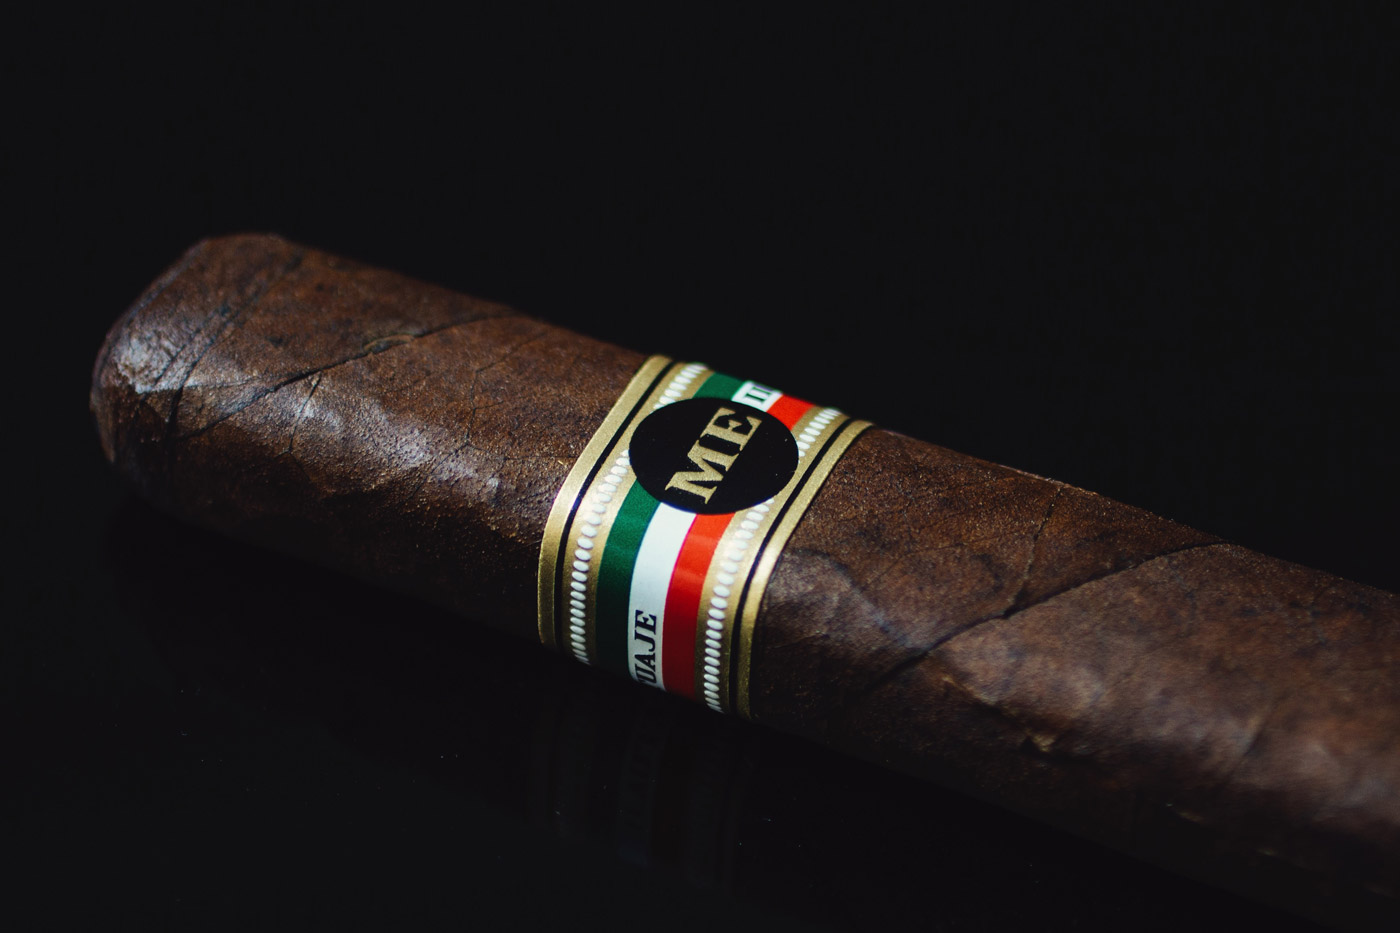 Tatuaje ME II Toro cigar review